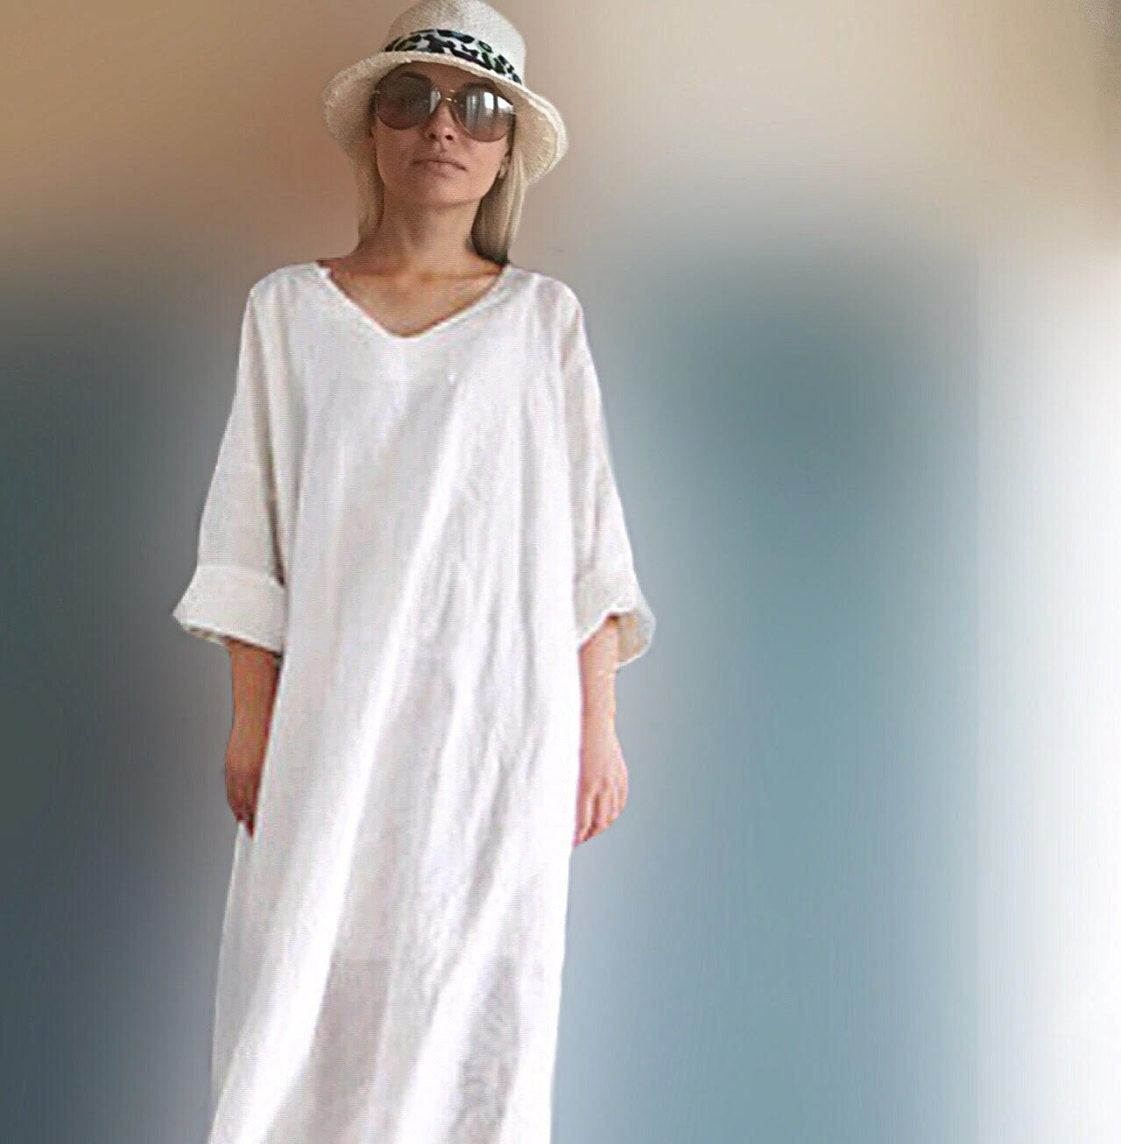 Linen dress women plus size clothing white by for White linen ladies shirt